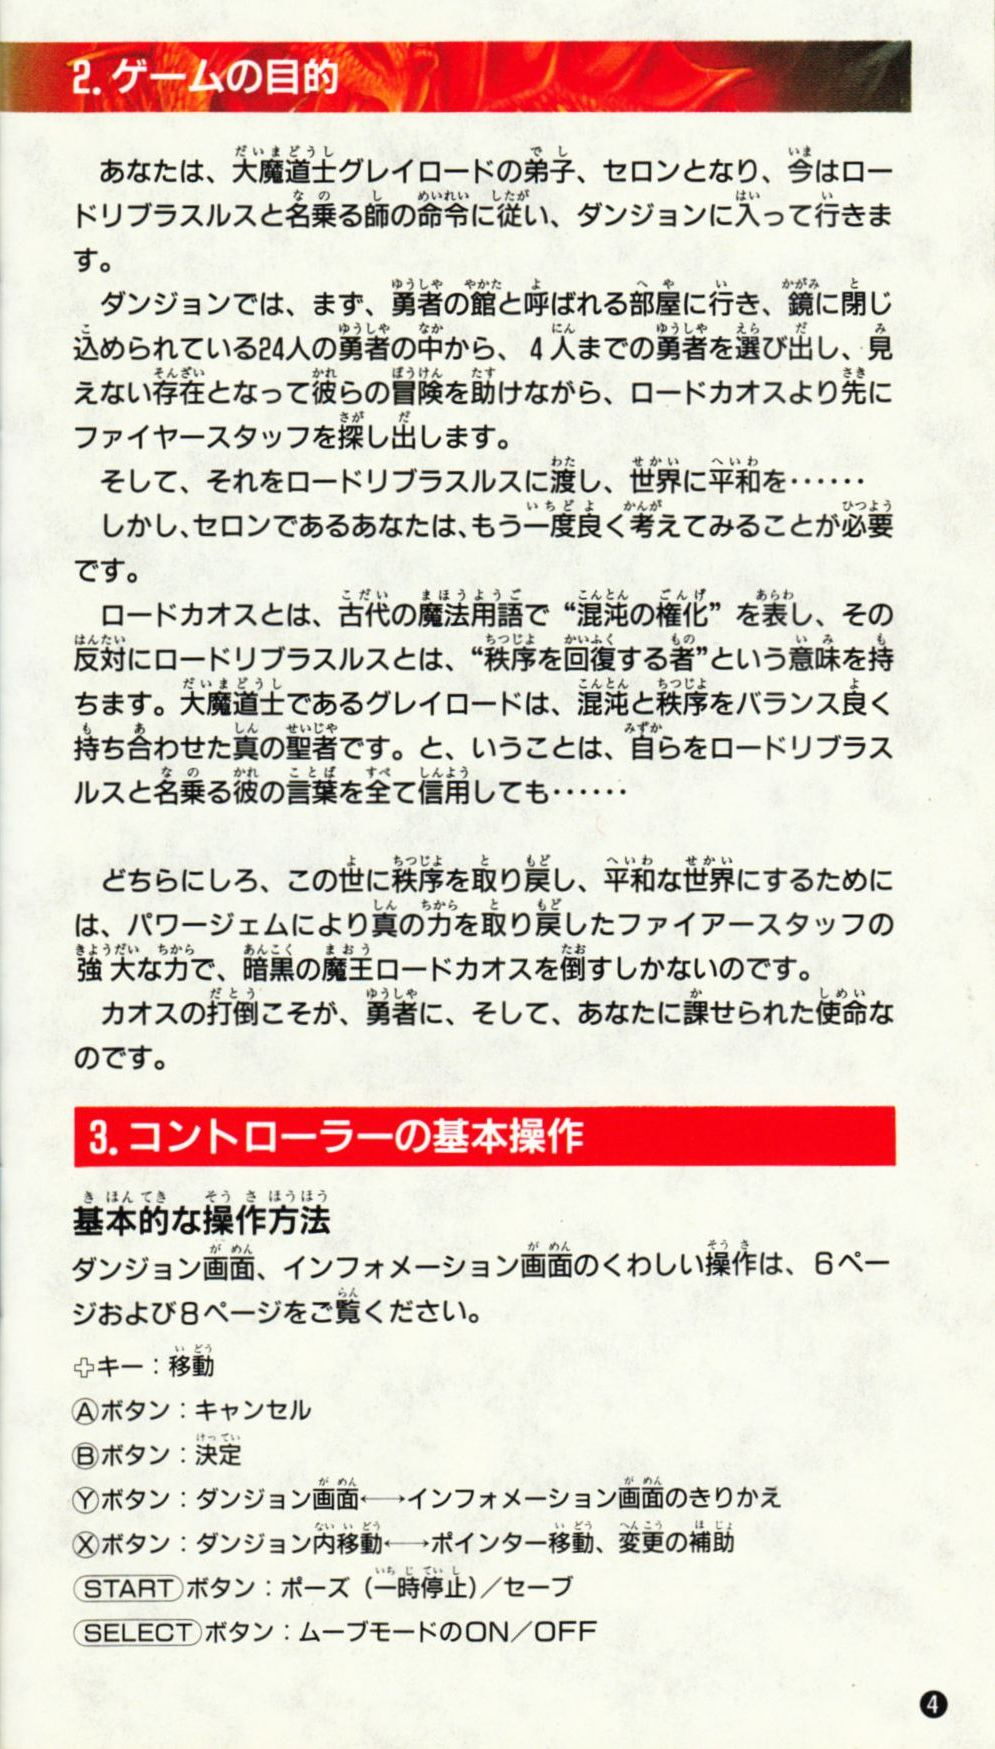 Game - Dungeon Master - JP - Super Famicom - Manual - Page 007 - Scan